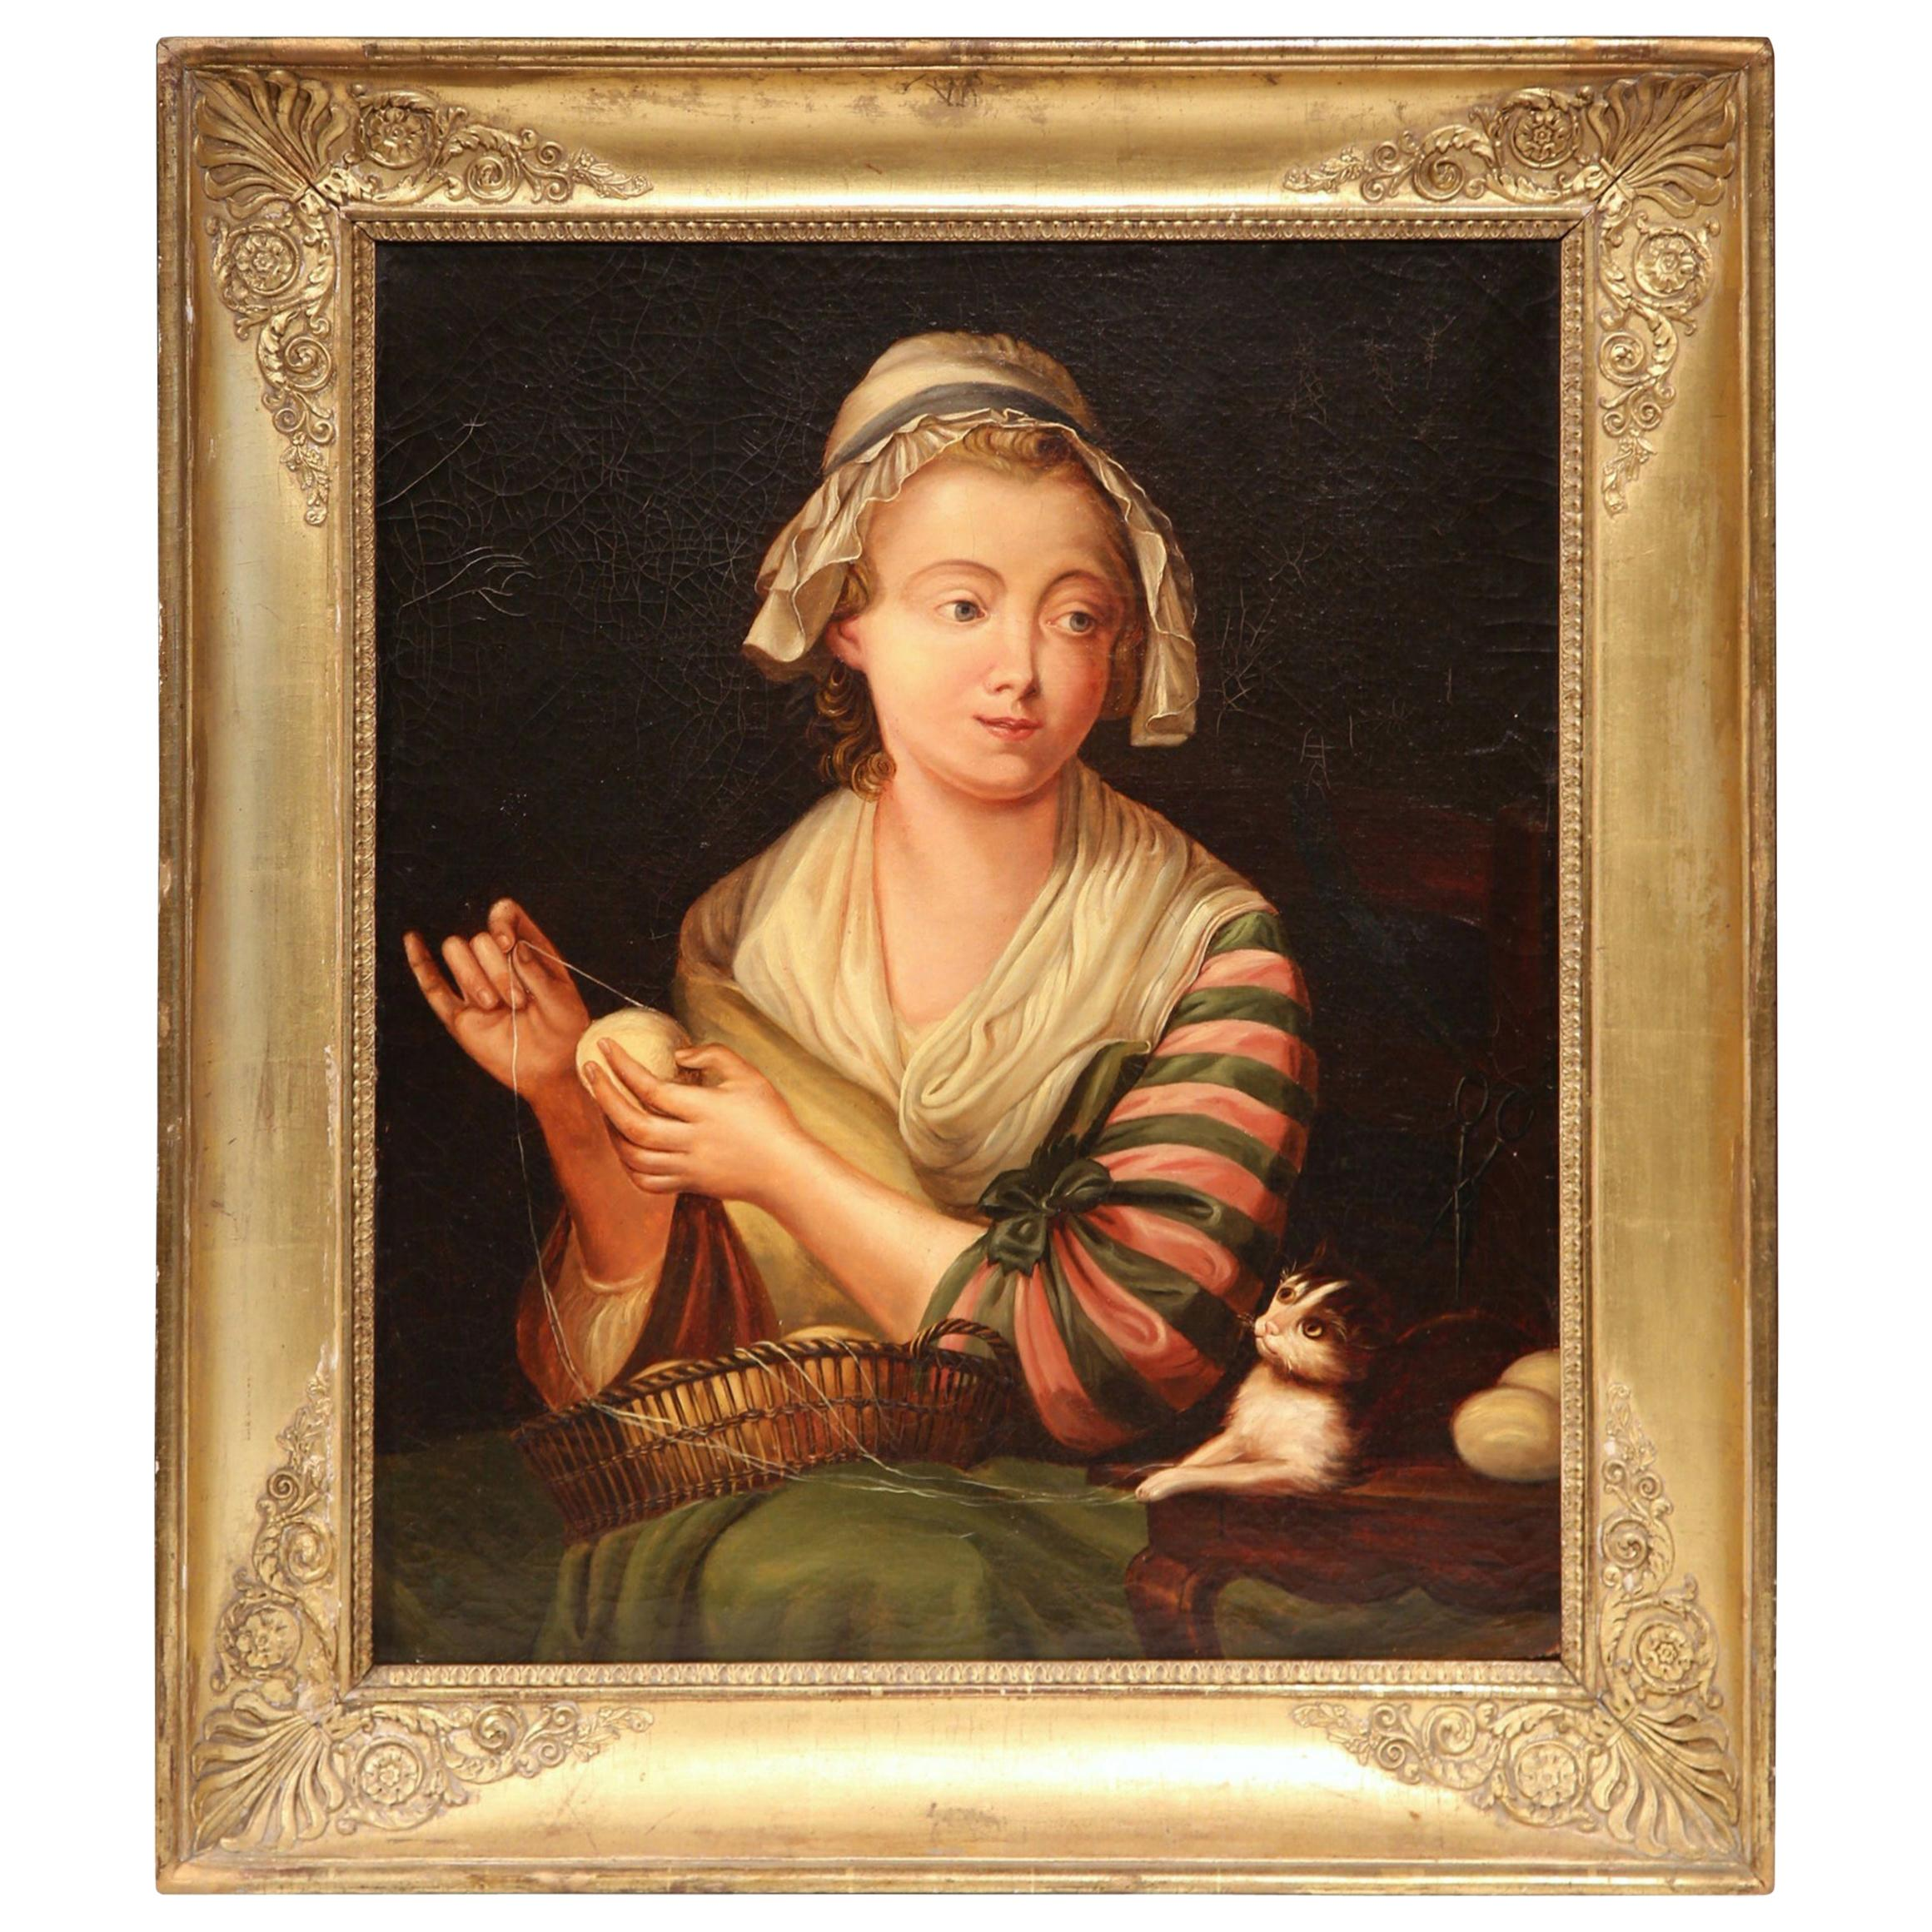 19th Century French Young Beauty Portrait Oil Painting in Carved Gilt Frame